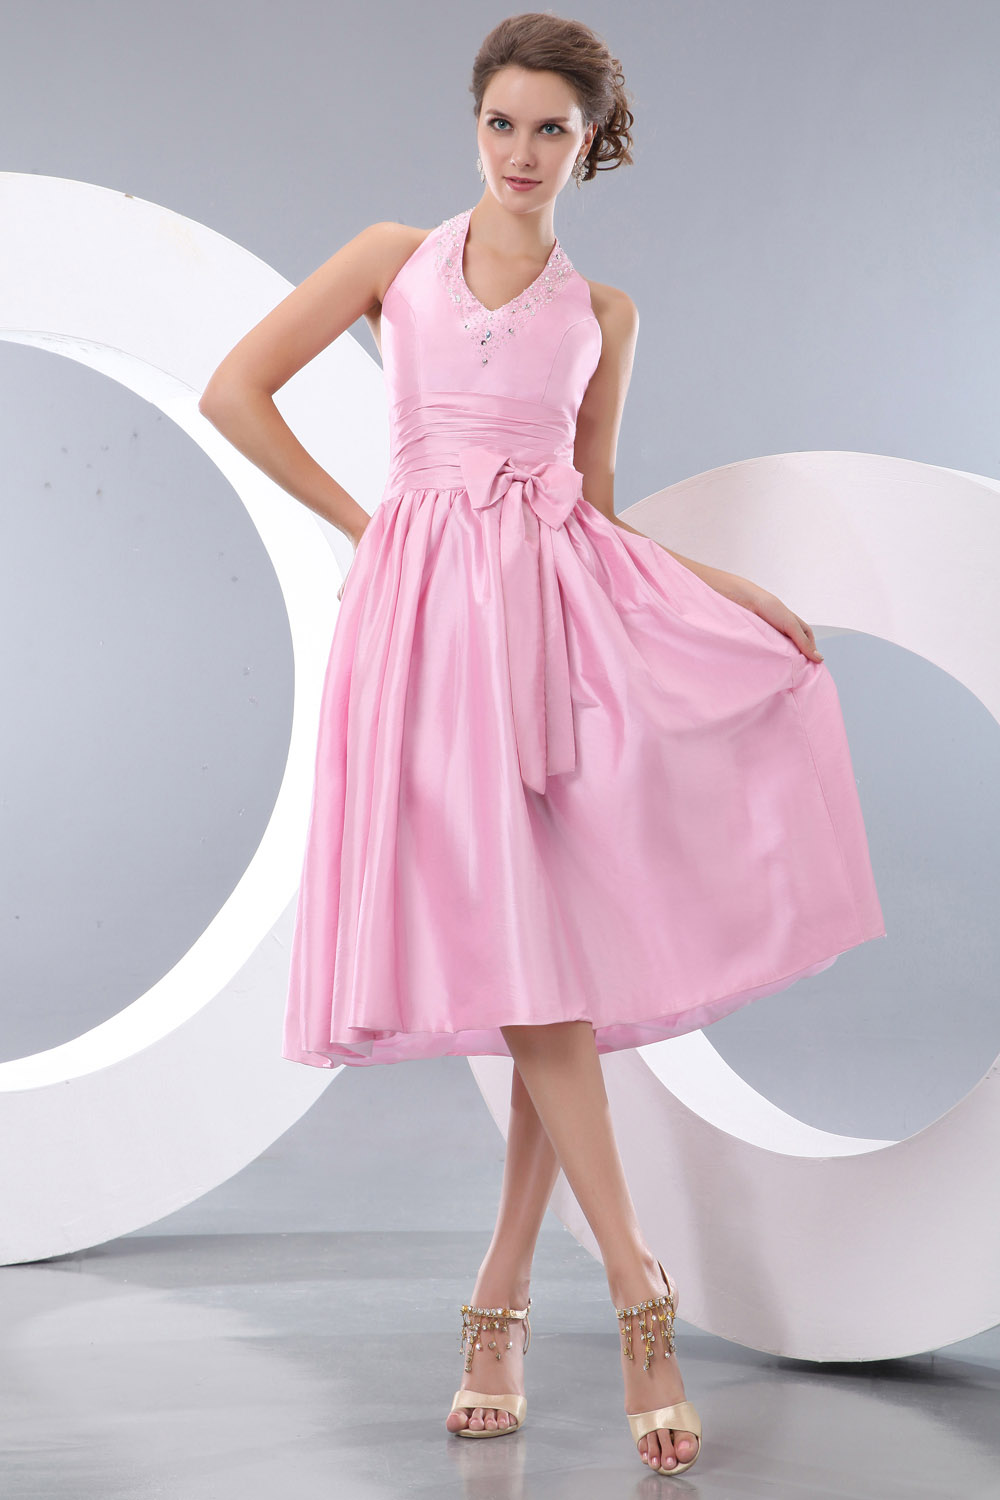 A-line Sweetheart Sweep/Brush Train Chiffon Graduation Dress